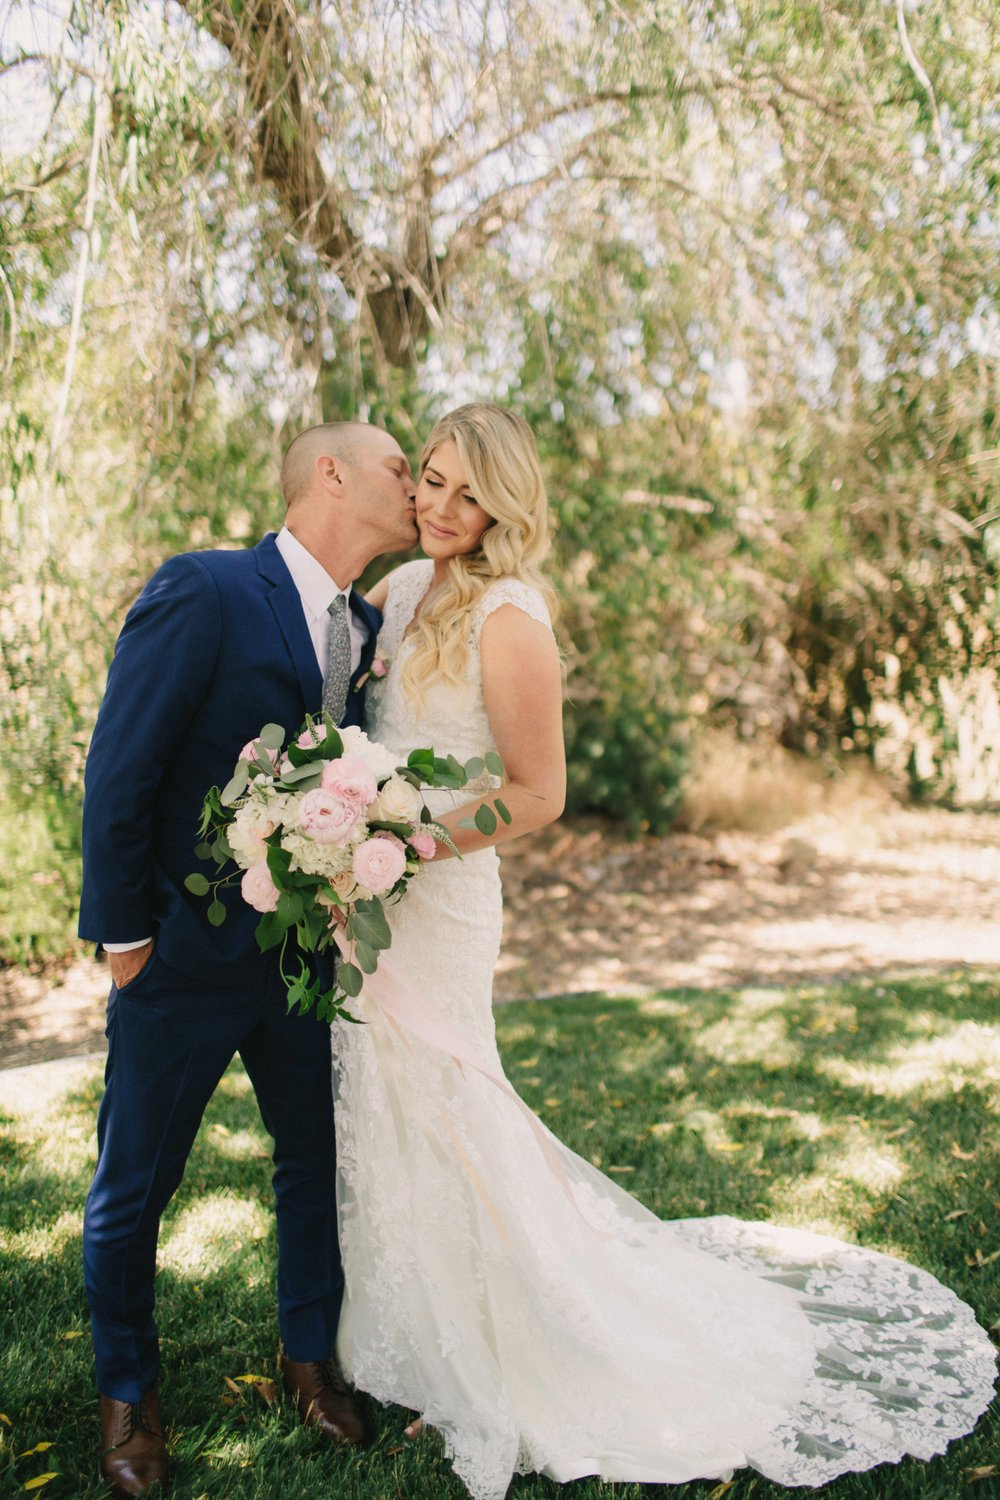 CaliforniaWedding|LindenCloverPhotography_0016.jpg